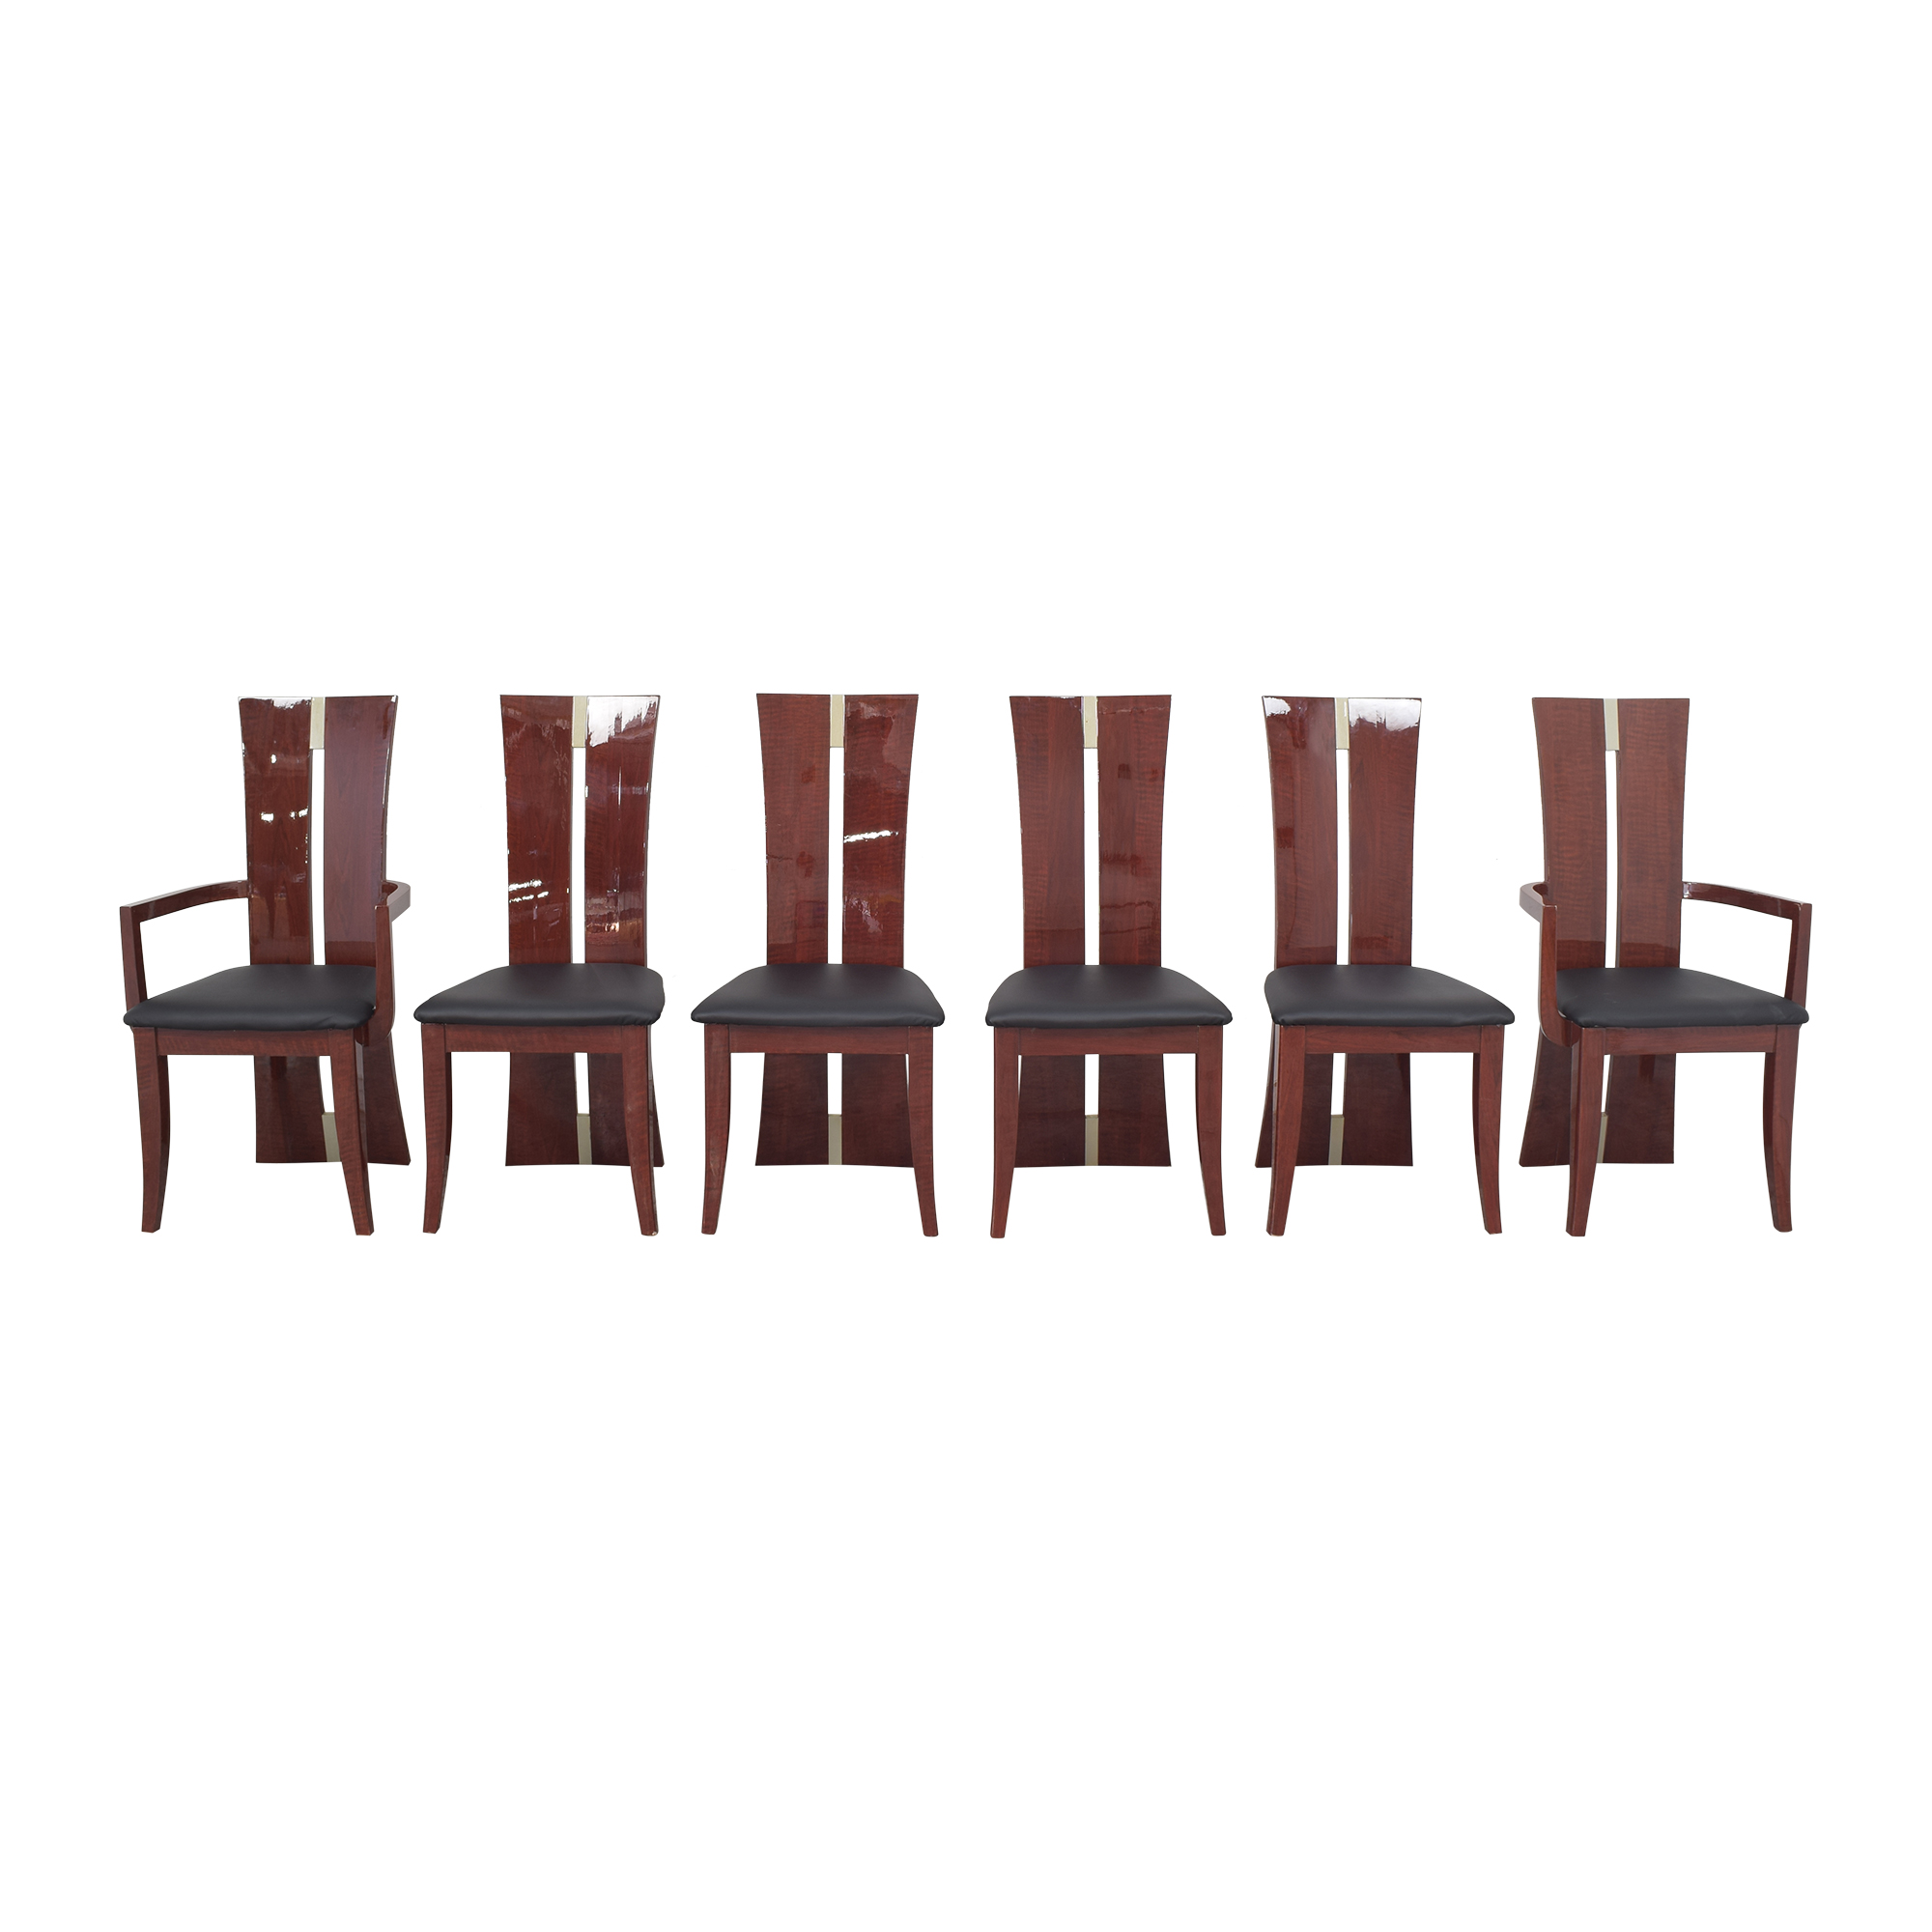 High Back Dining Chairs for sale